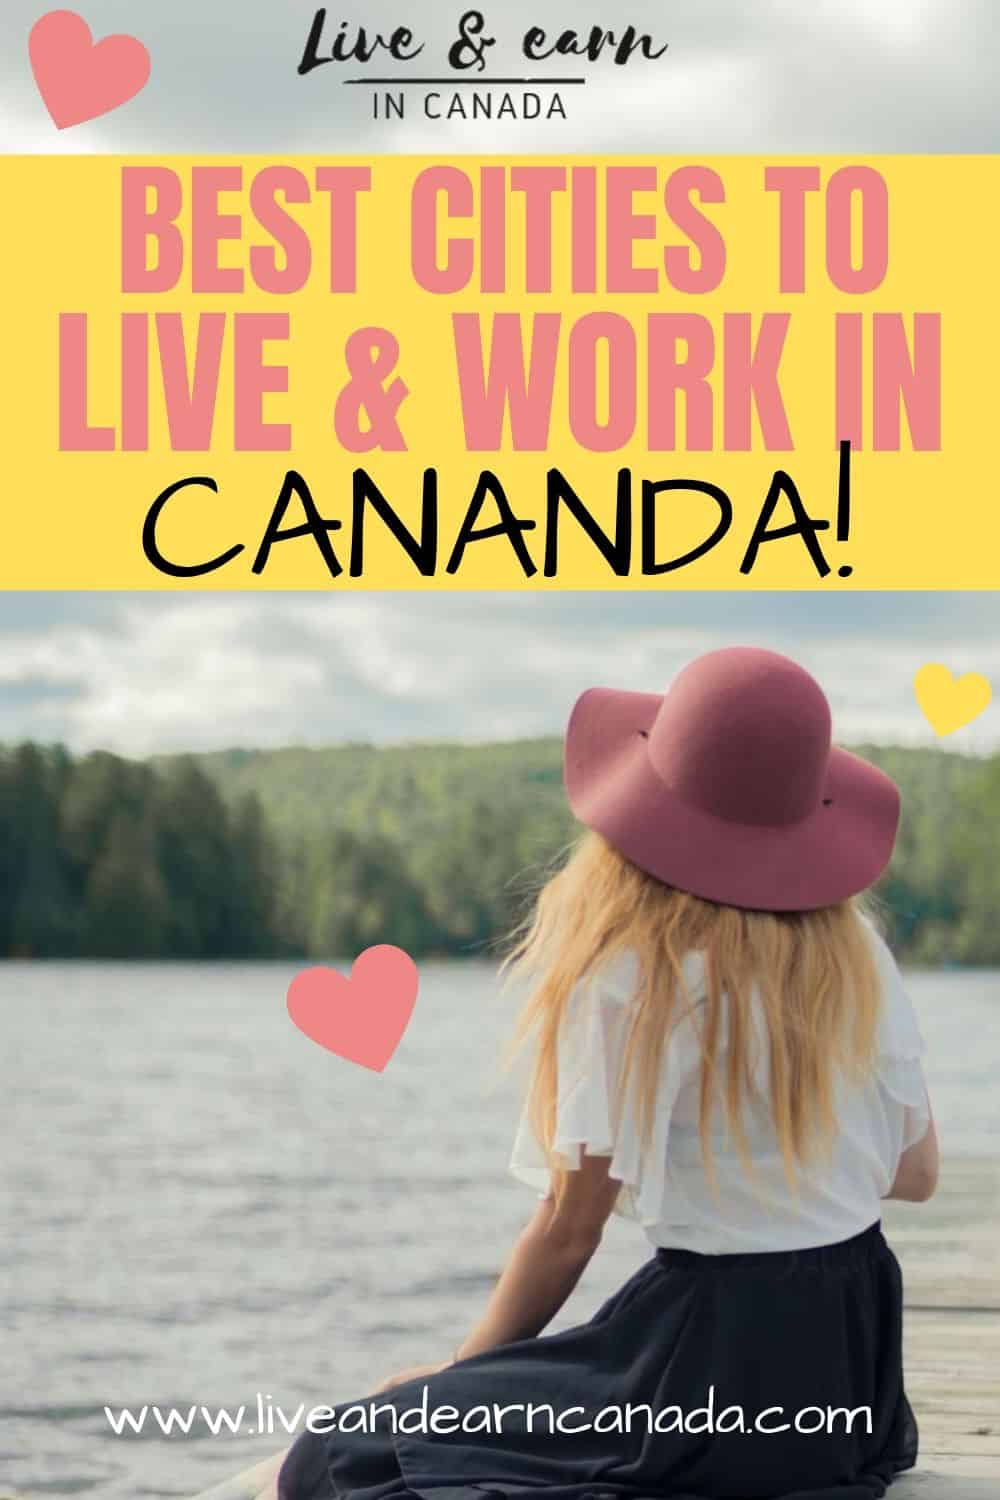 Here are the best cities to live and work in Canada. If you want to move to Canada and you are looking for the best cities to visit and live in Canada, then be sure to check out this list. Canada has so many beautiful cities to choose from. You can visit Montreal, work in Ottawa, enjoy the view in Vancouver. Be sure to visit Canada on your next vacation planning. Live and earn in Canada is now easier #Canada #Discovercanada #workincanada #Traveltocanada